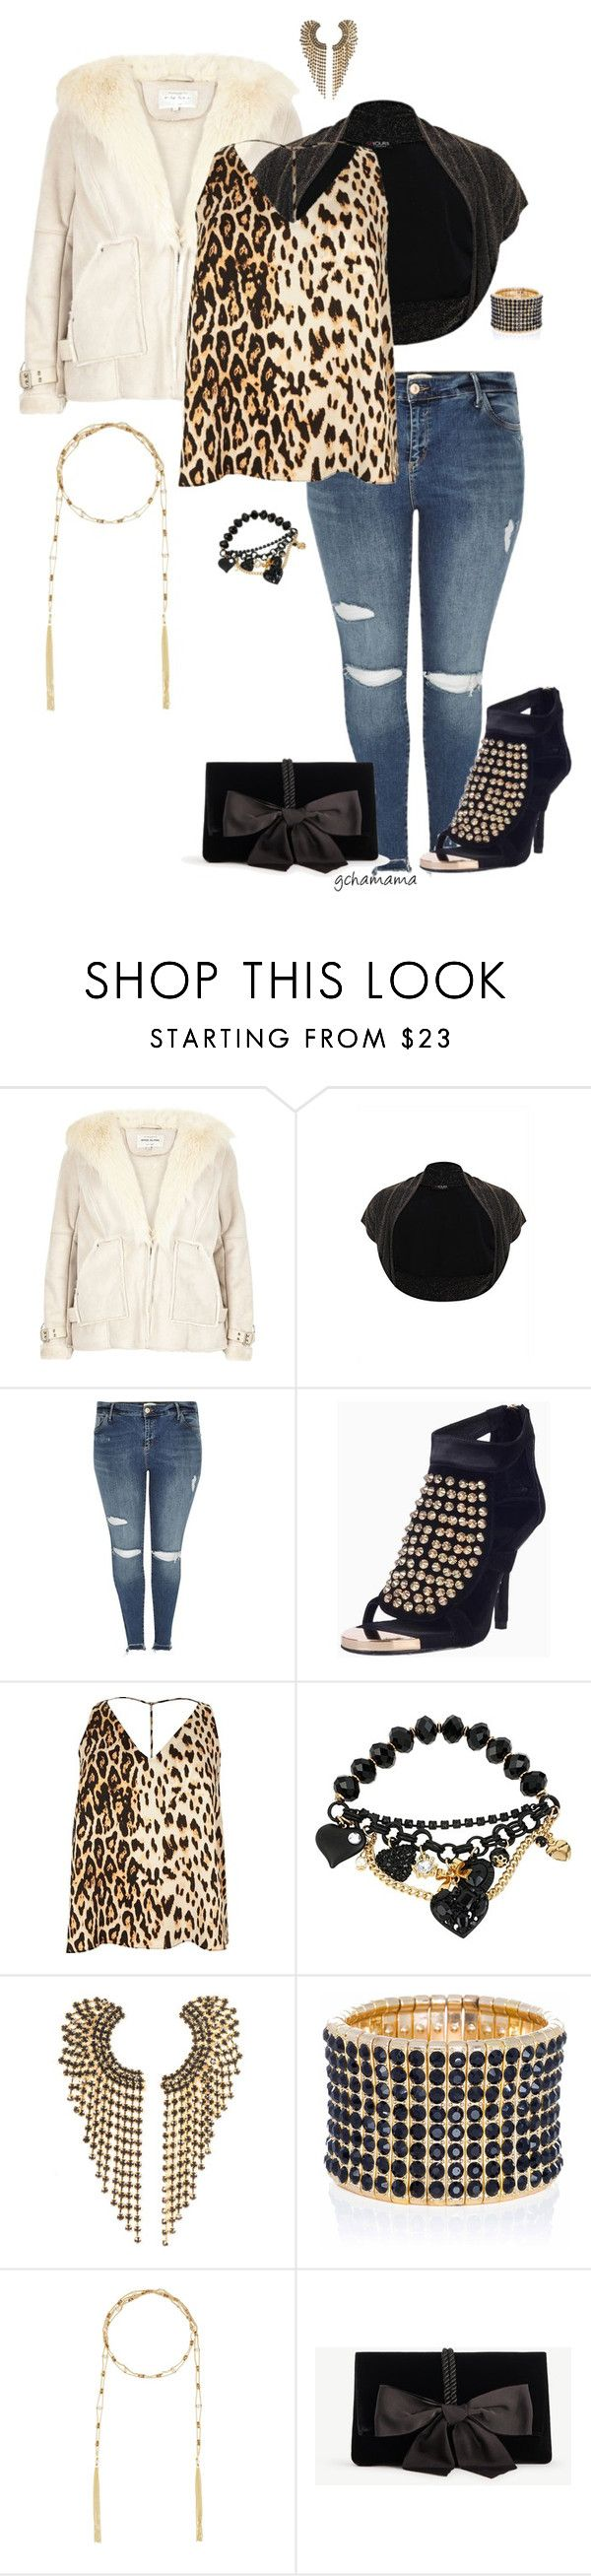 """""""I'll be gentle- plus size"""" by gchamama ❤ liked on Polyvore featuring River Island, Betsey Johnson, White Leaf, Ingenious Jewellery, NAKAMOL, Ann Taylor and plus size clothing"""